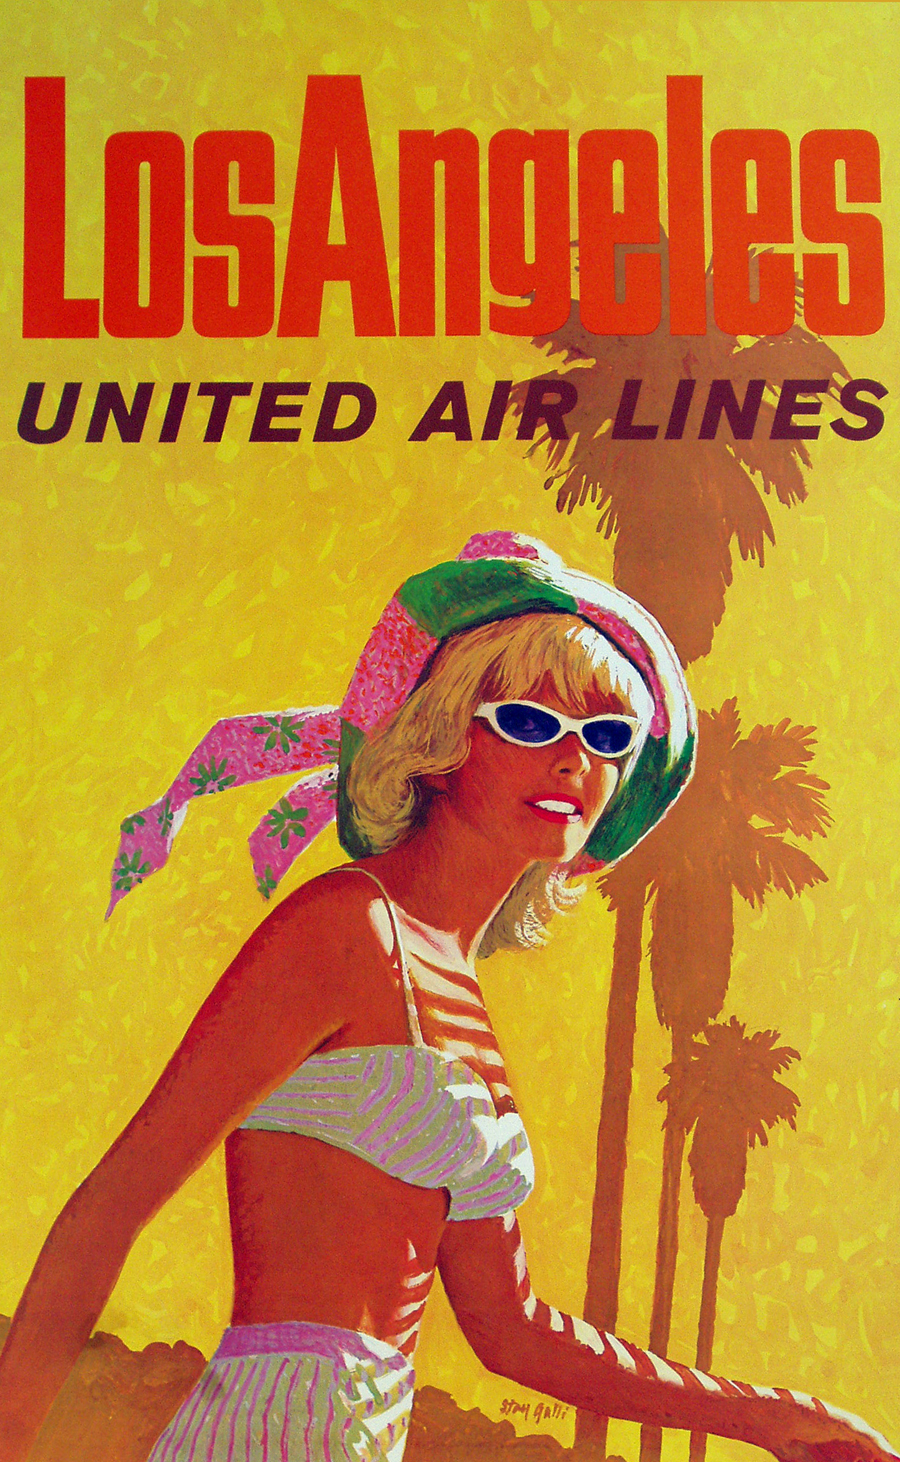 Los Angeles – United Airlines.